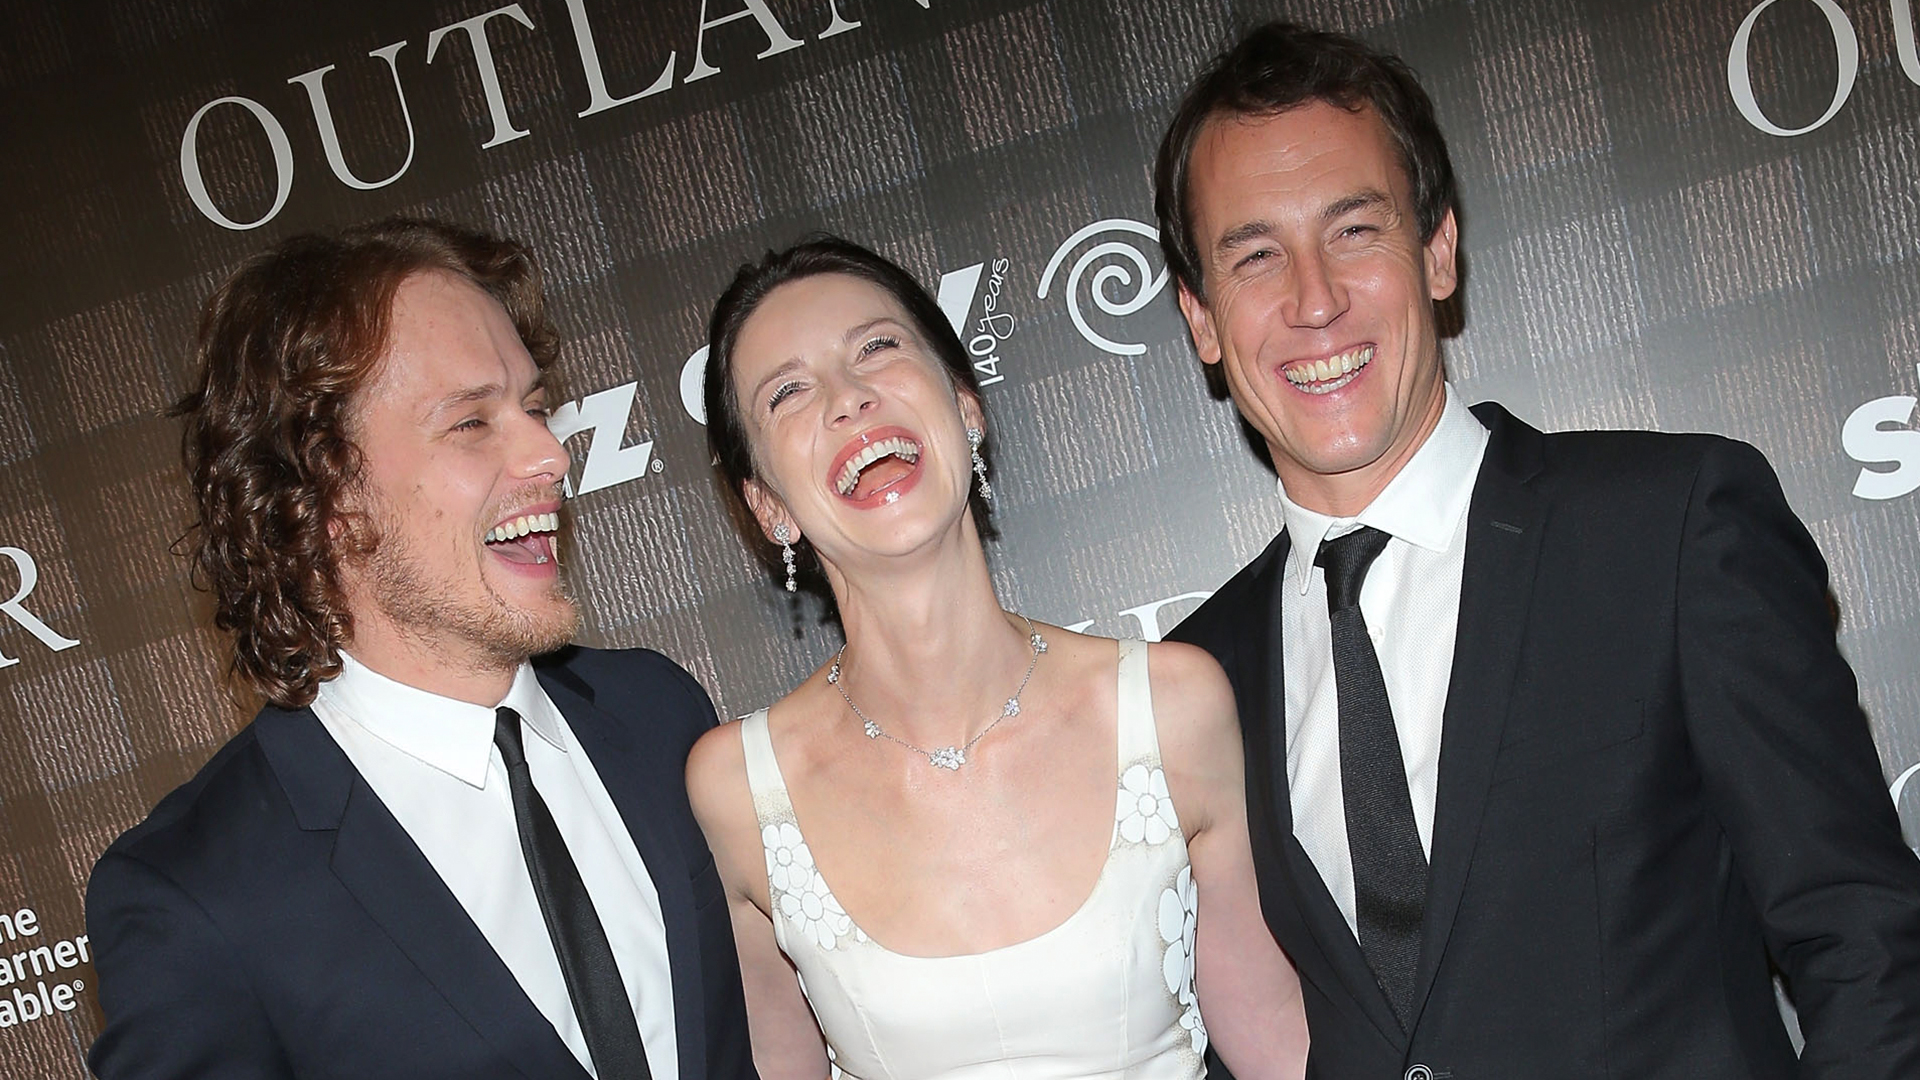 Outlander Cast And Crew Celebrate New York Screening Make The Show For The Fans Variety